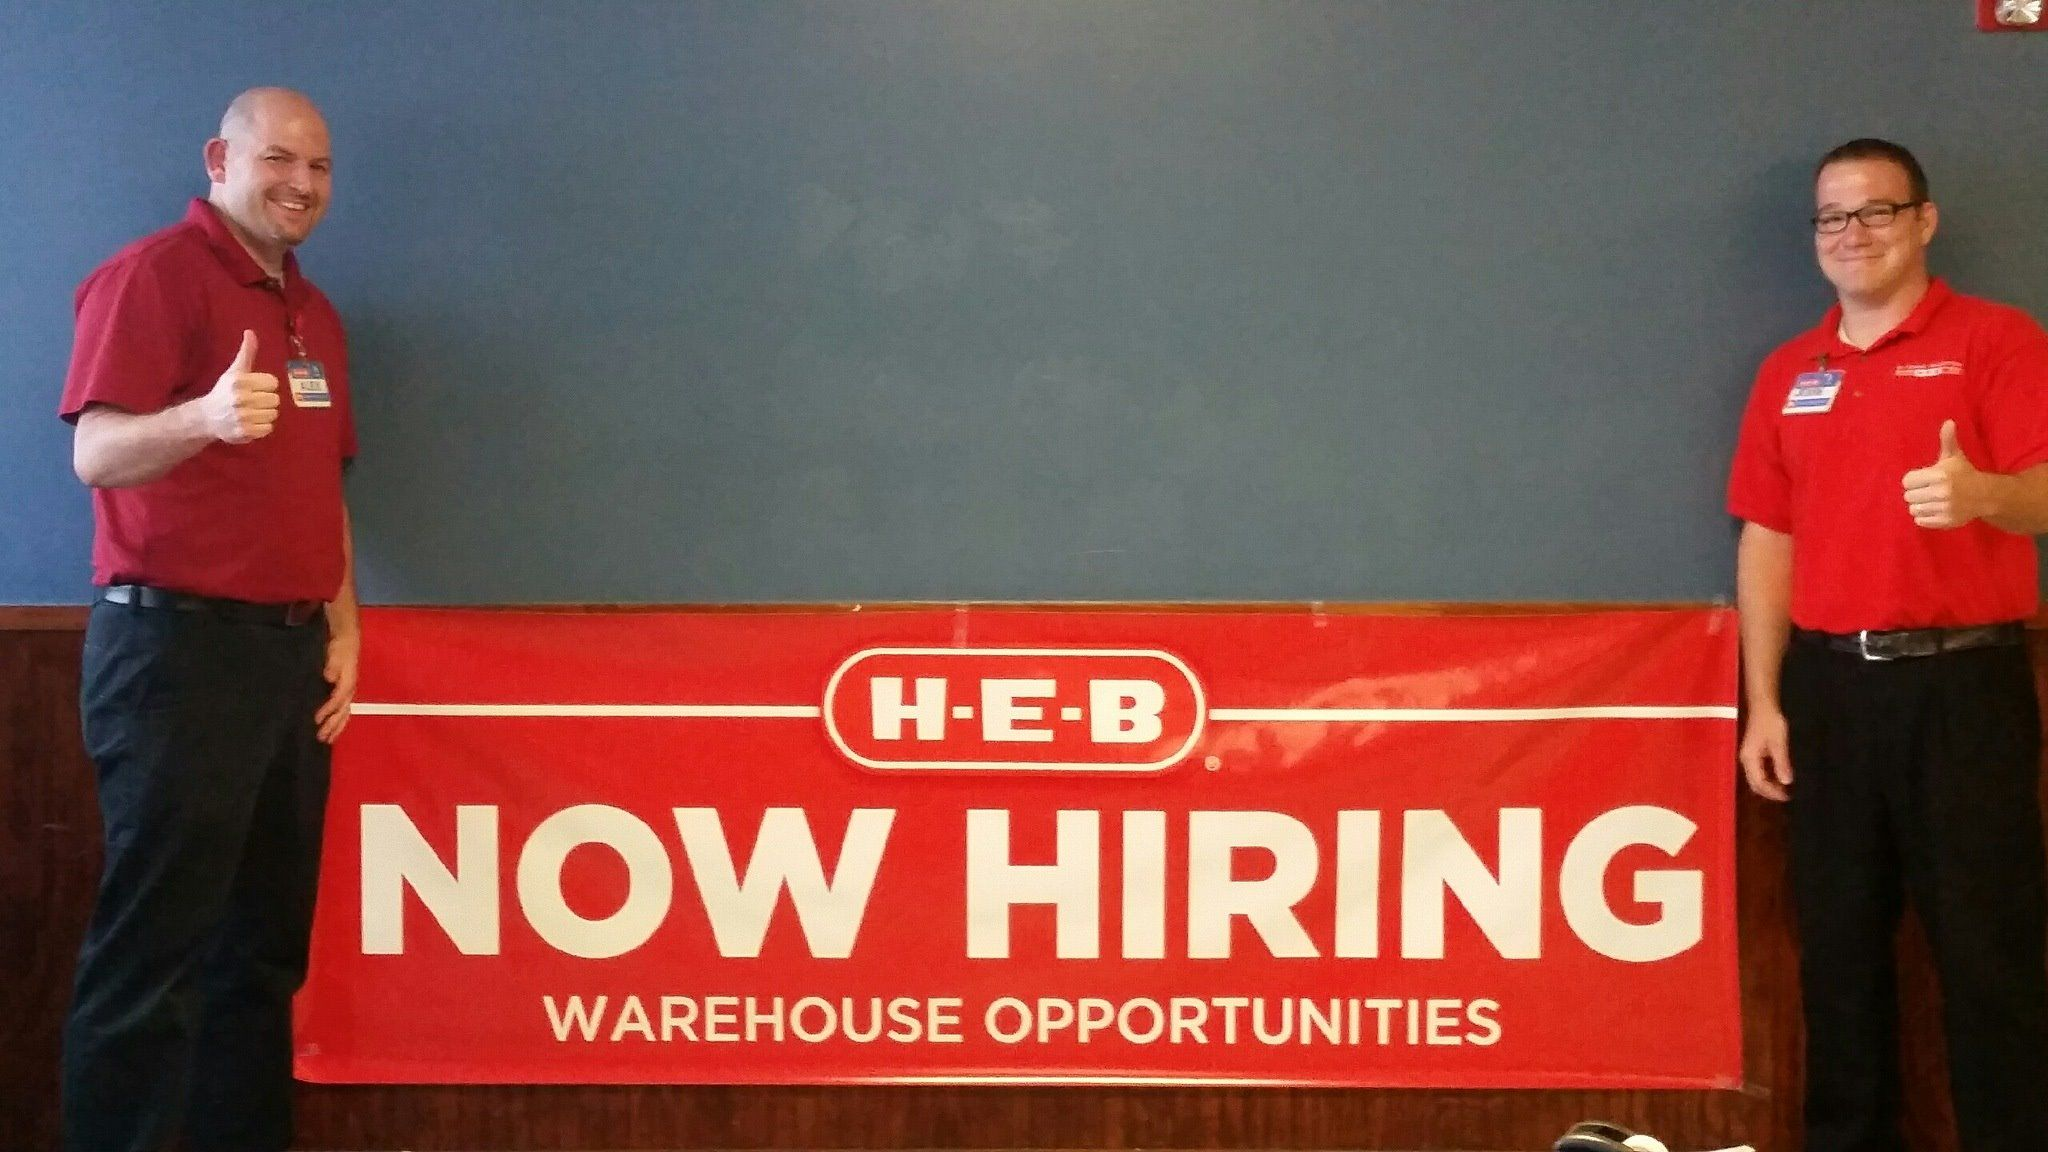 Our San Marcos Warehouse Location Is Hiring And Looking For Full